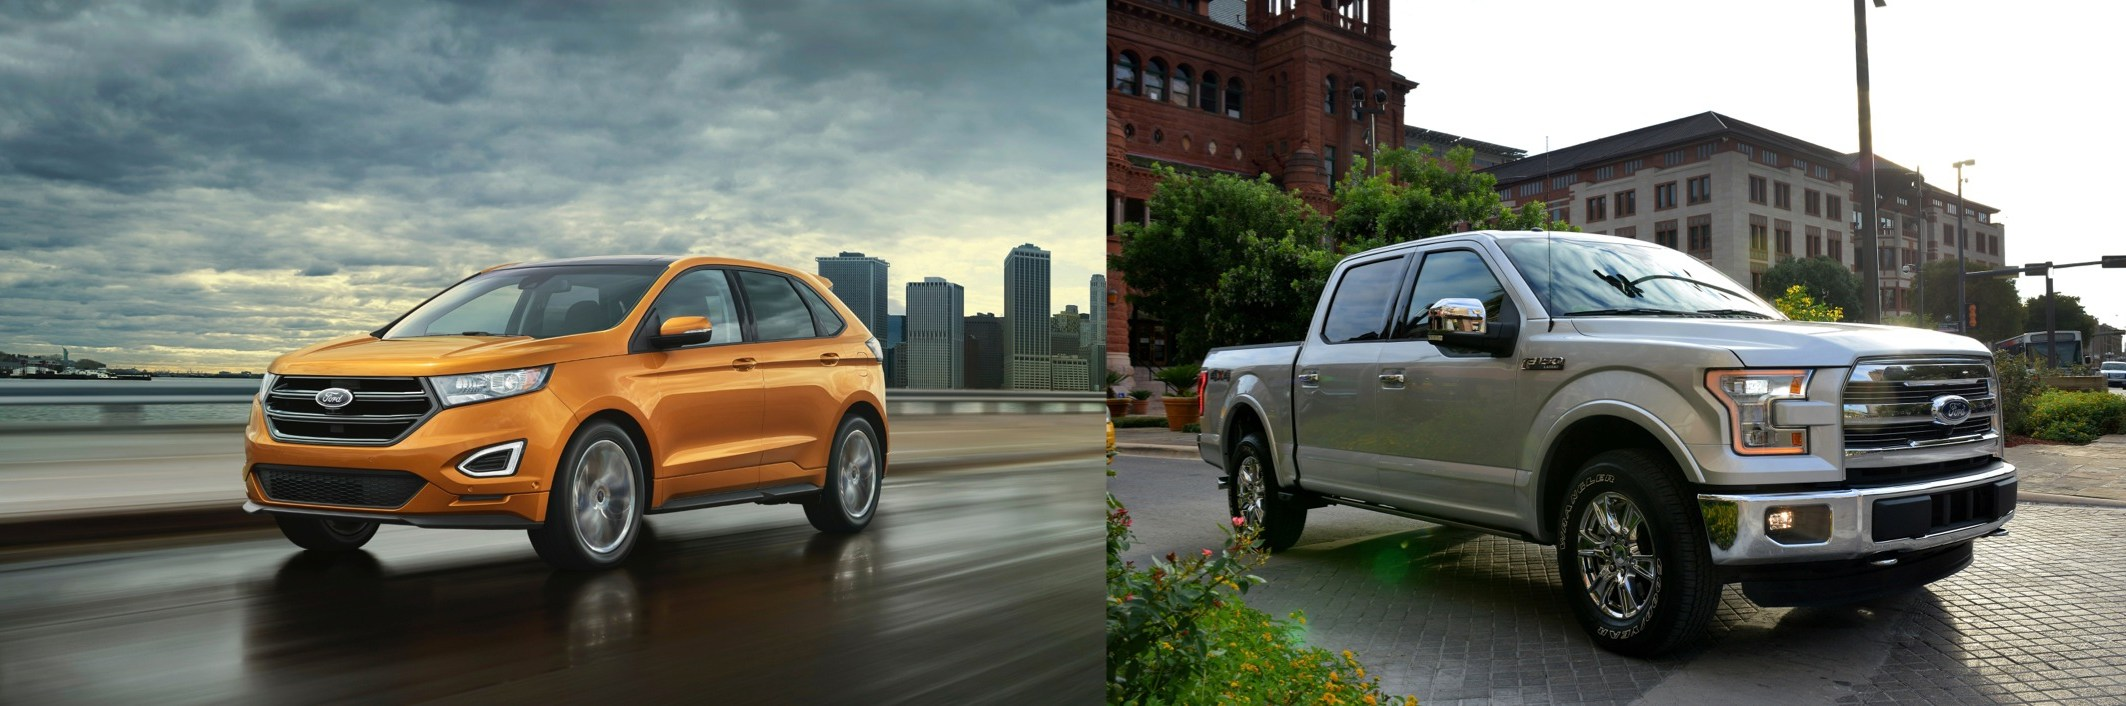 2015 Edge and 2015 F150 Pair side-by-side, a ideal multiple of beauty and brauns.